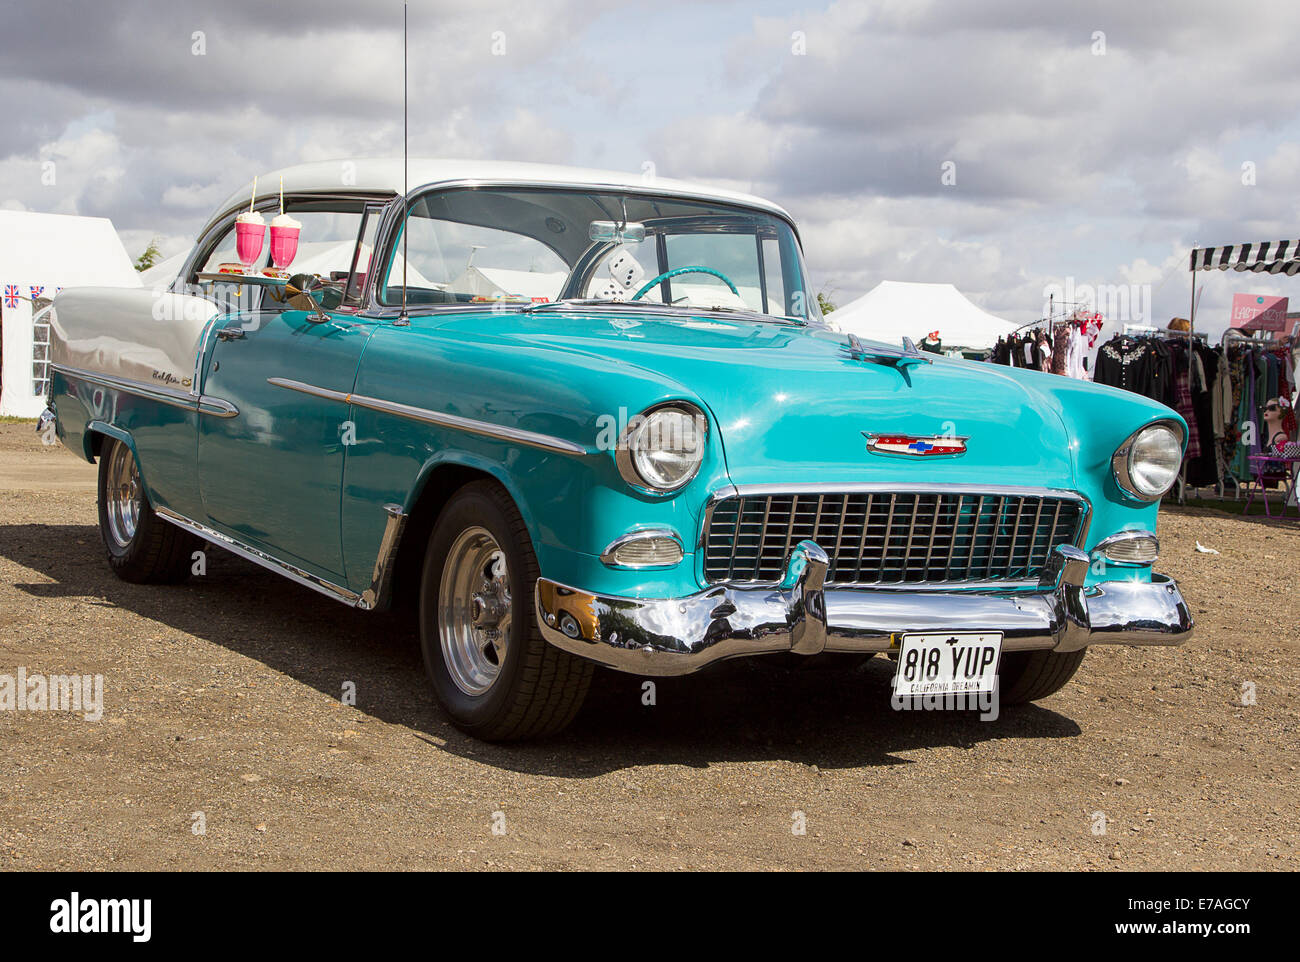 1955 Chevrolet Bel Air 2 Door Hardtop Sedan In Two Tone Turquoise U0026 White  With Hood Bird Aka U0027The Hot Oneu0027